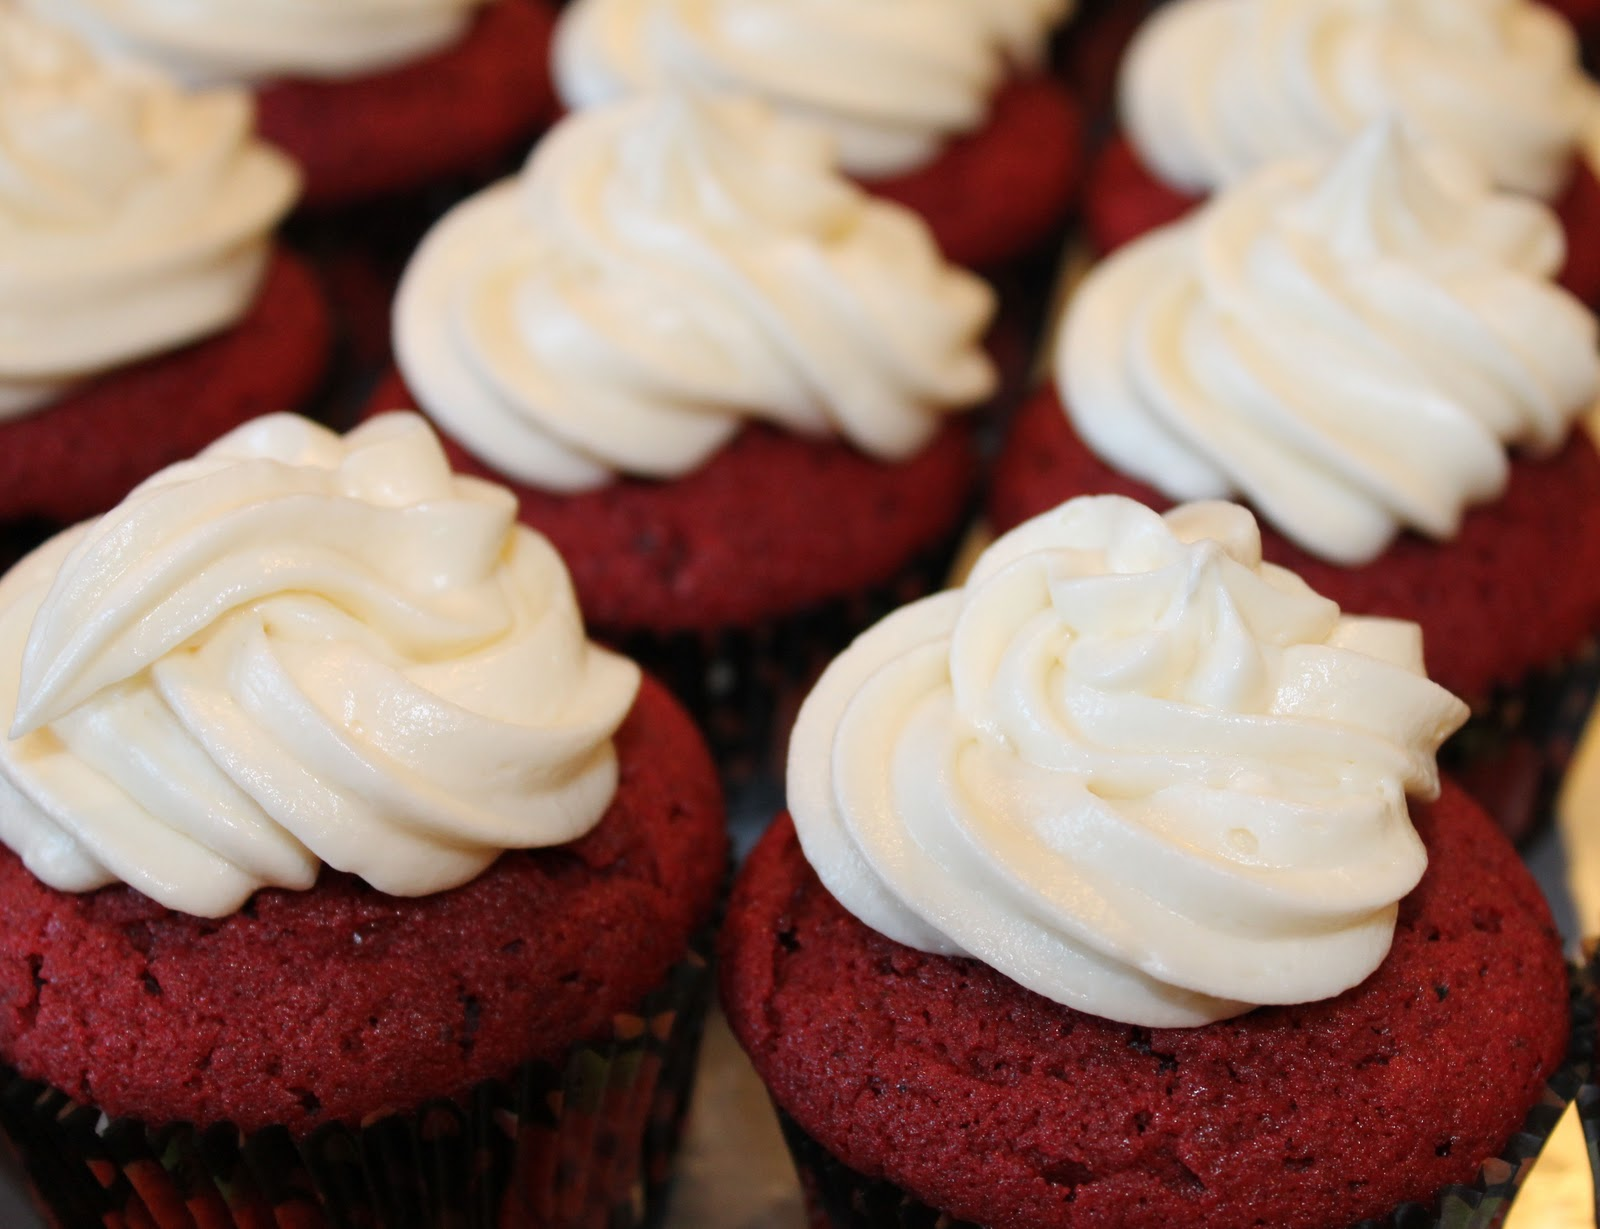 My Favortite Red Velvet Cupcakes